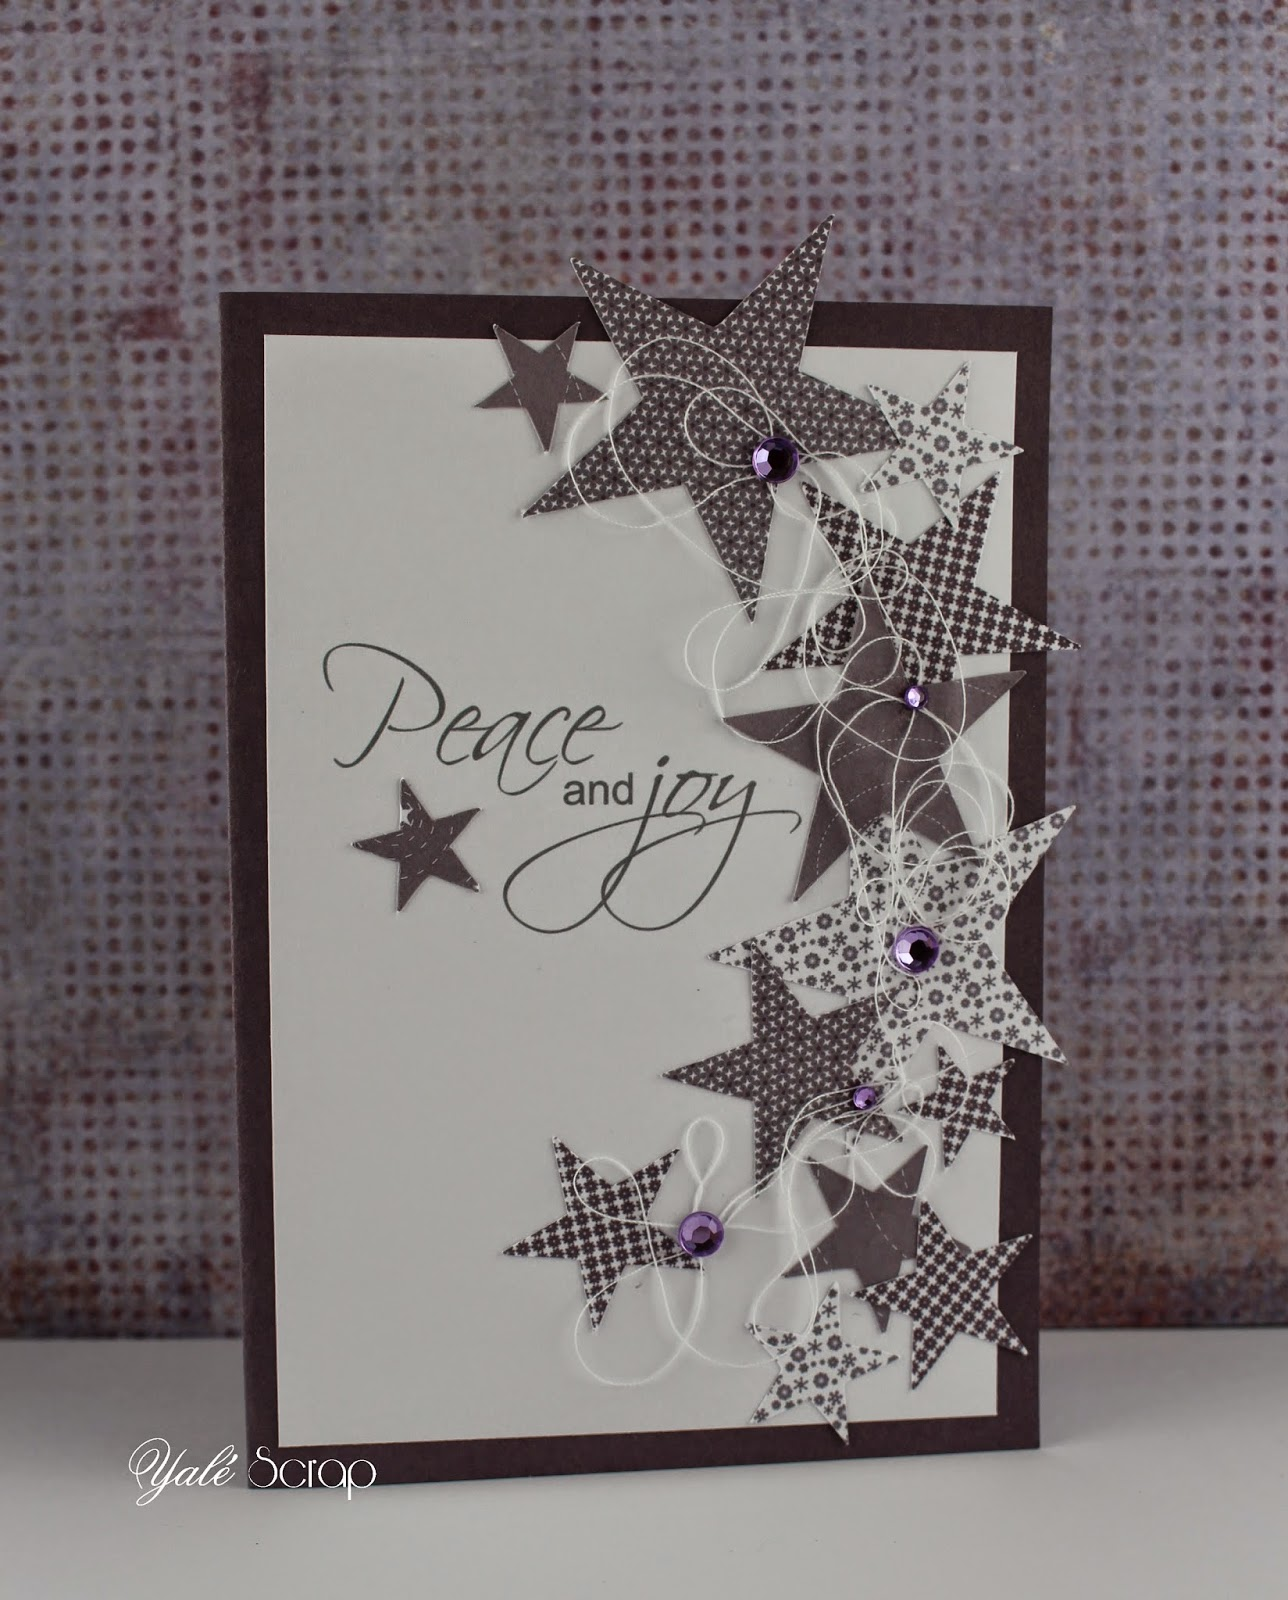 Histoire de scrap 39 carte peace and joy - Carte de voeux scrapbooking ...